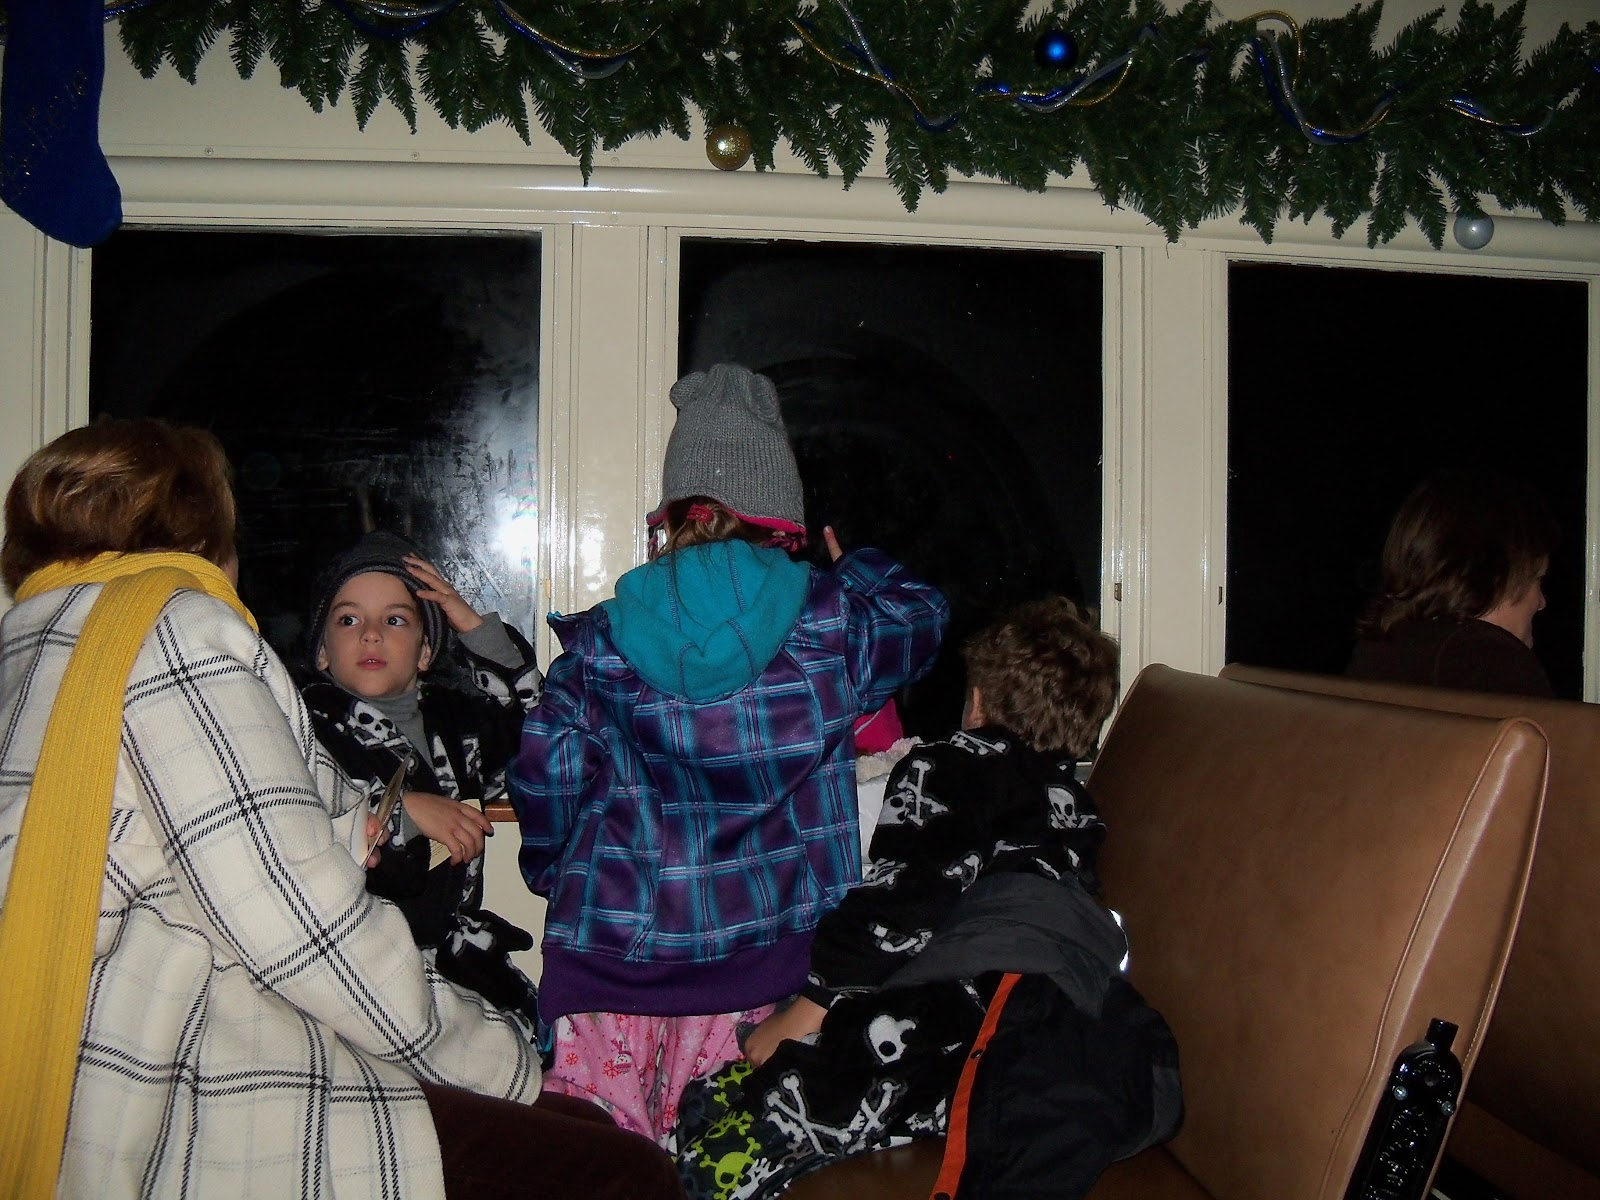 Polar Express Christmas Train 2011 - 115_0963.JPG